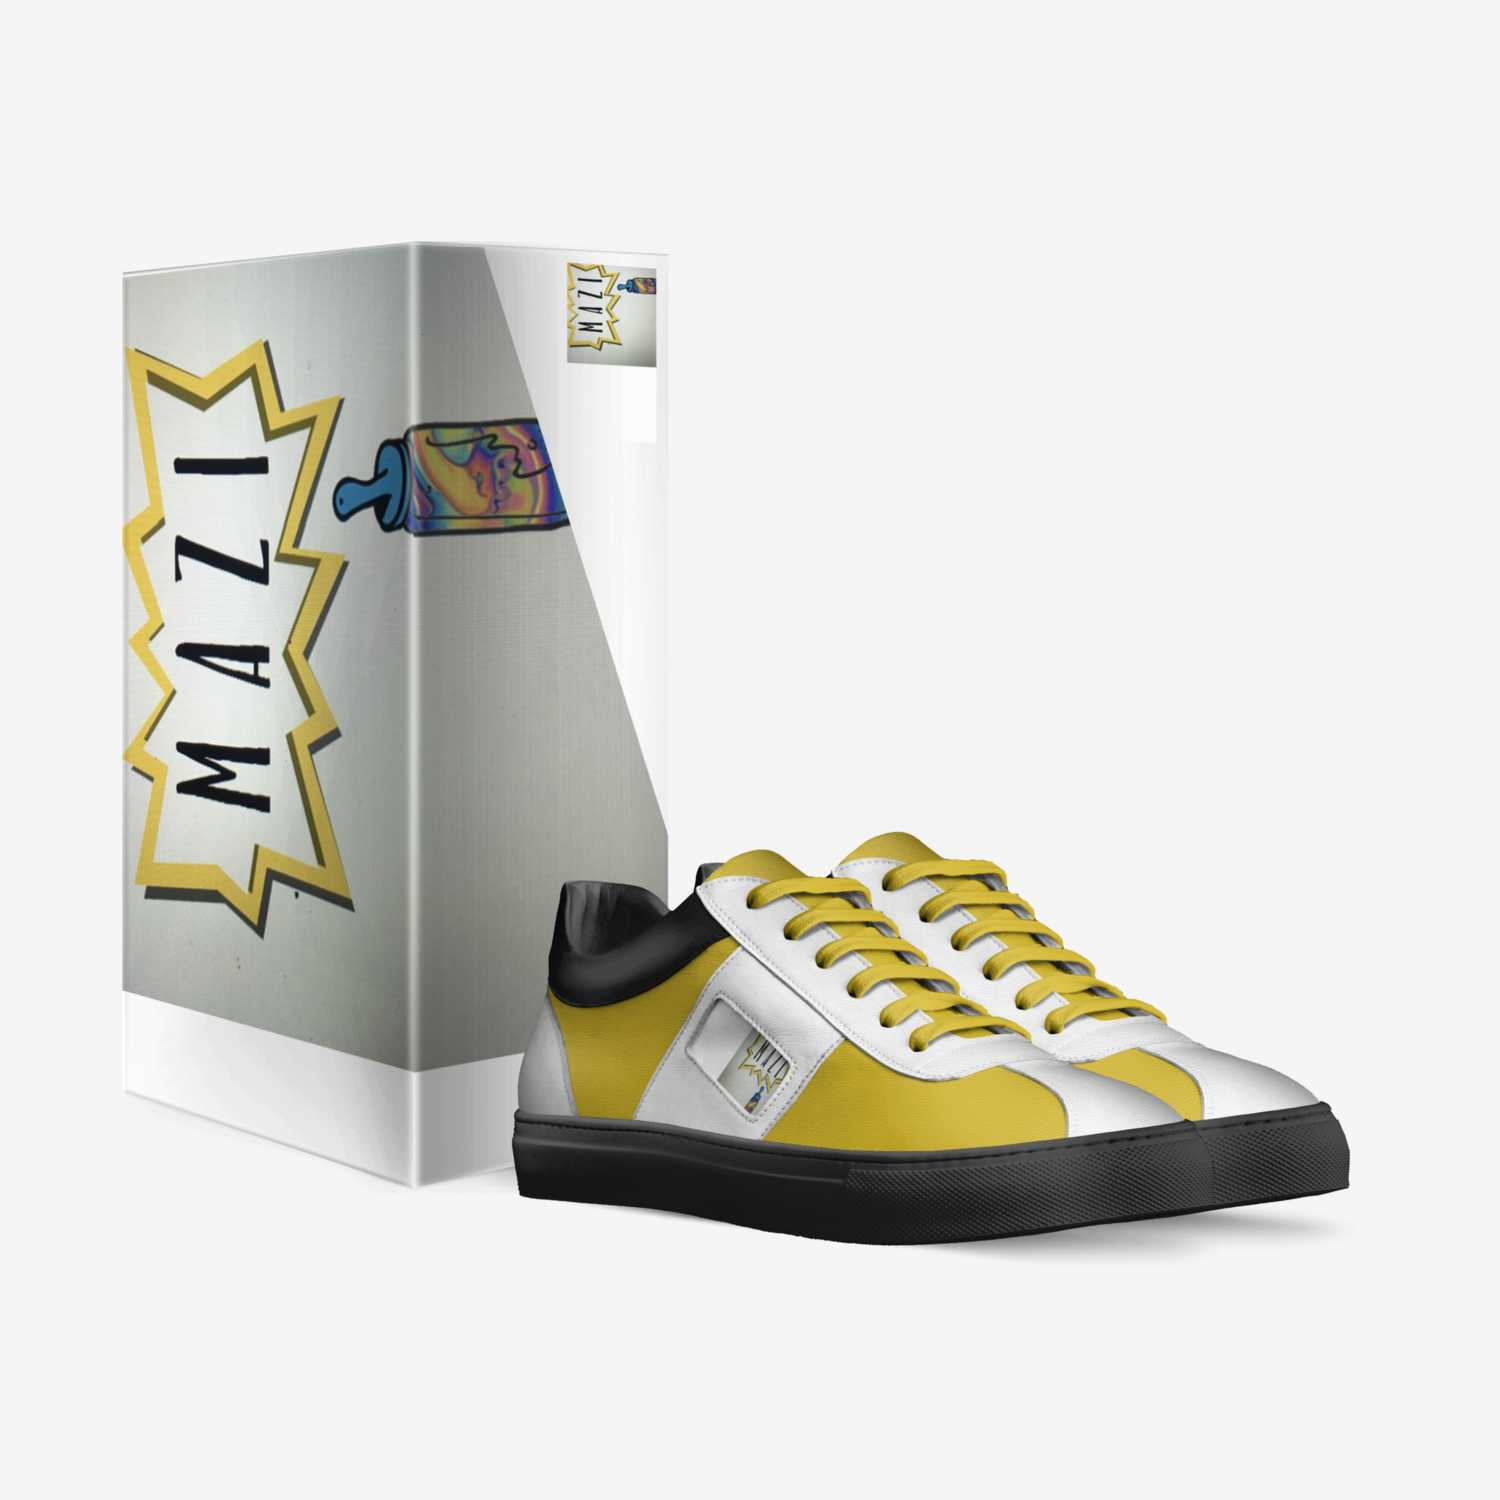 Mazi custom made in Italy shoes by Shaka Miller | Box view